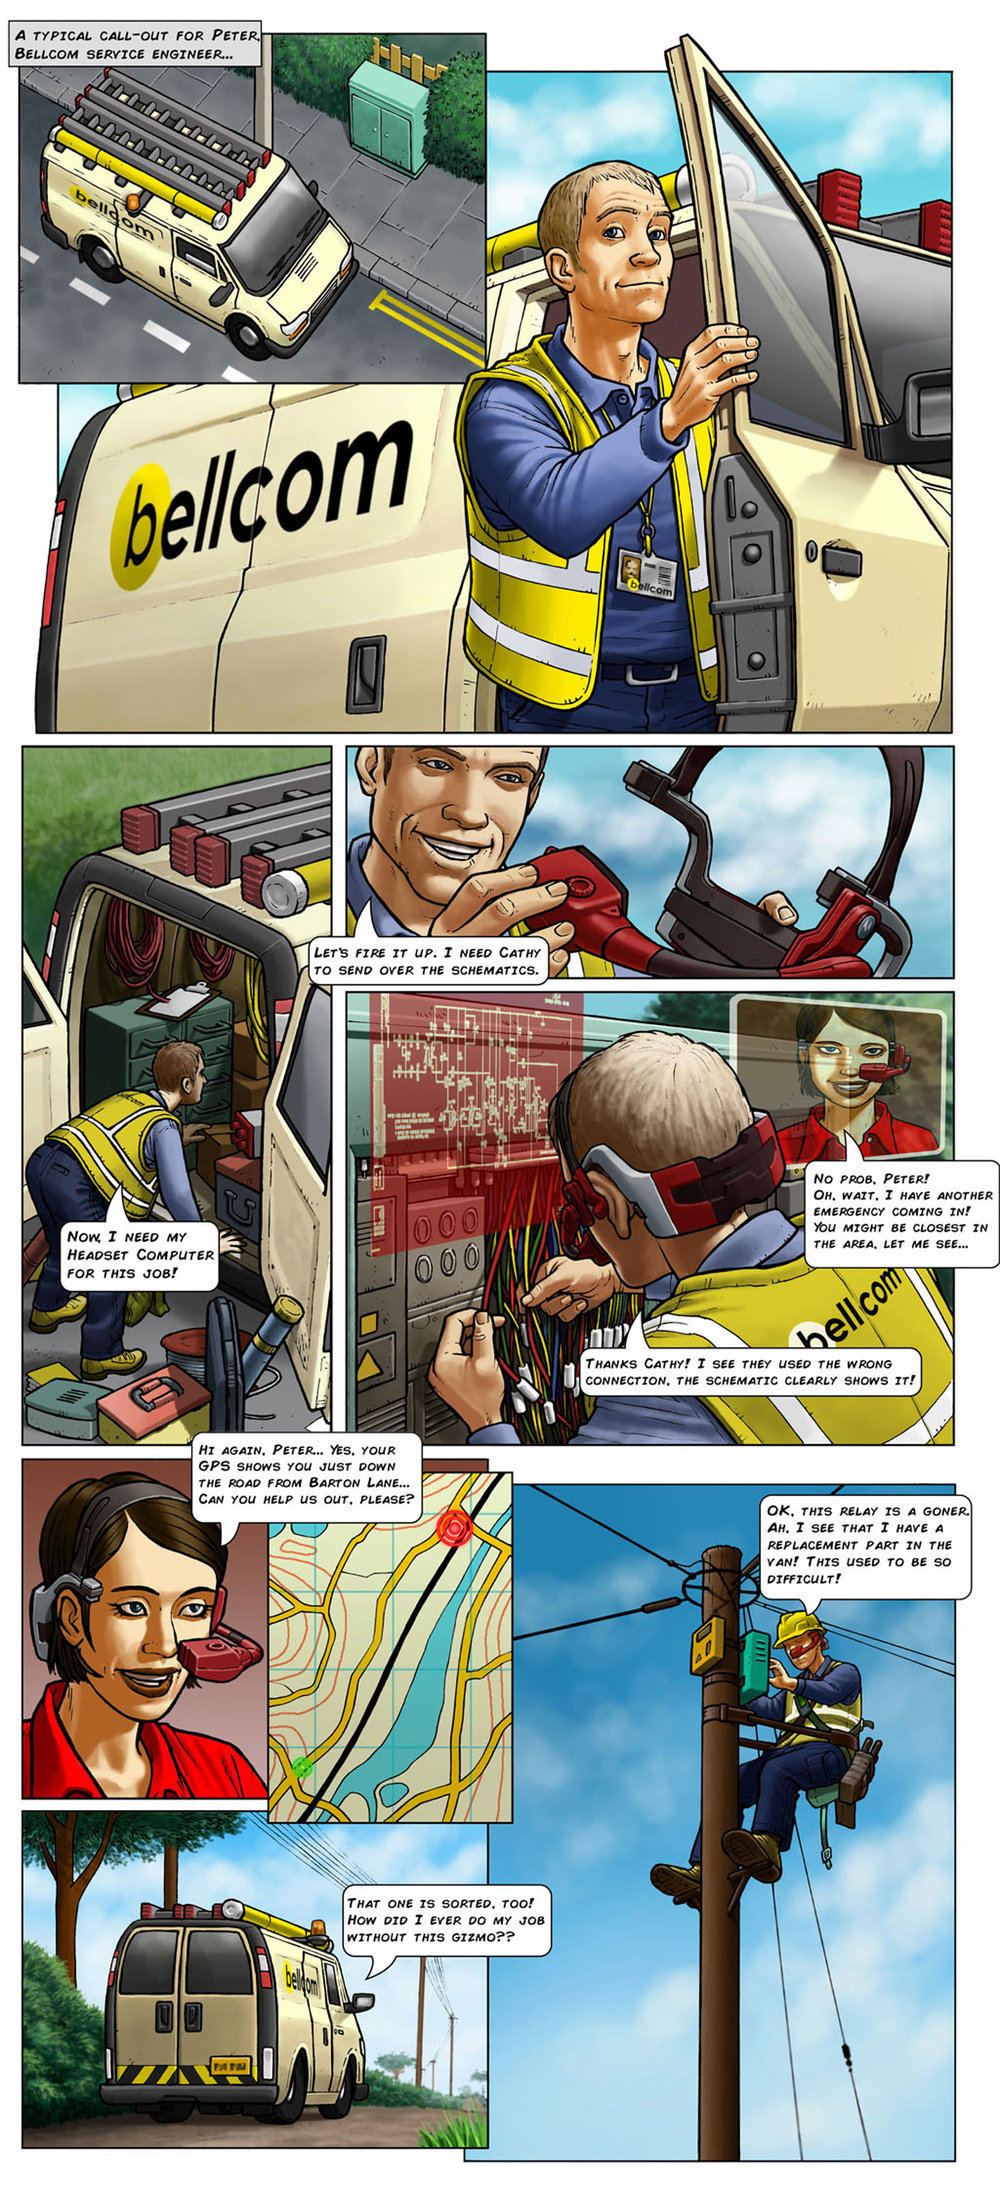 Colourised comic strip of an HMD being worn during an electrical installation scenario